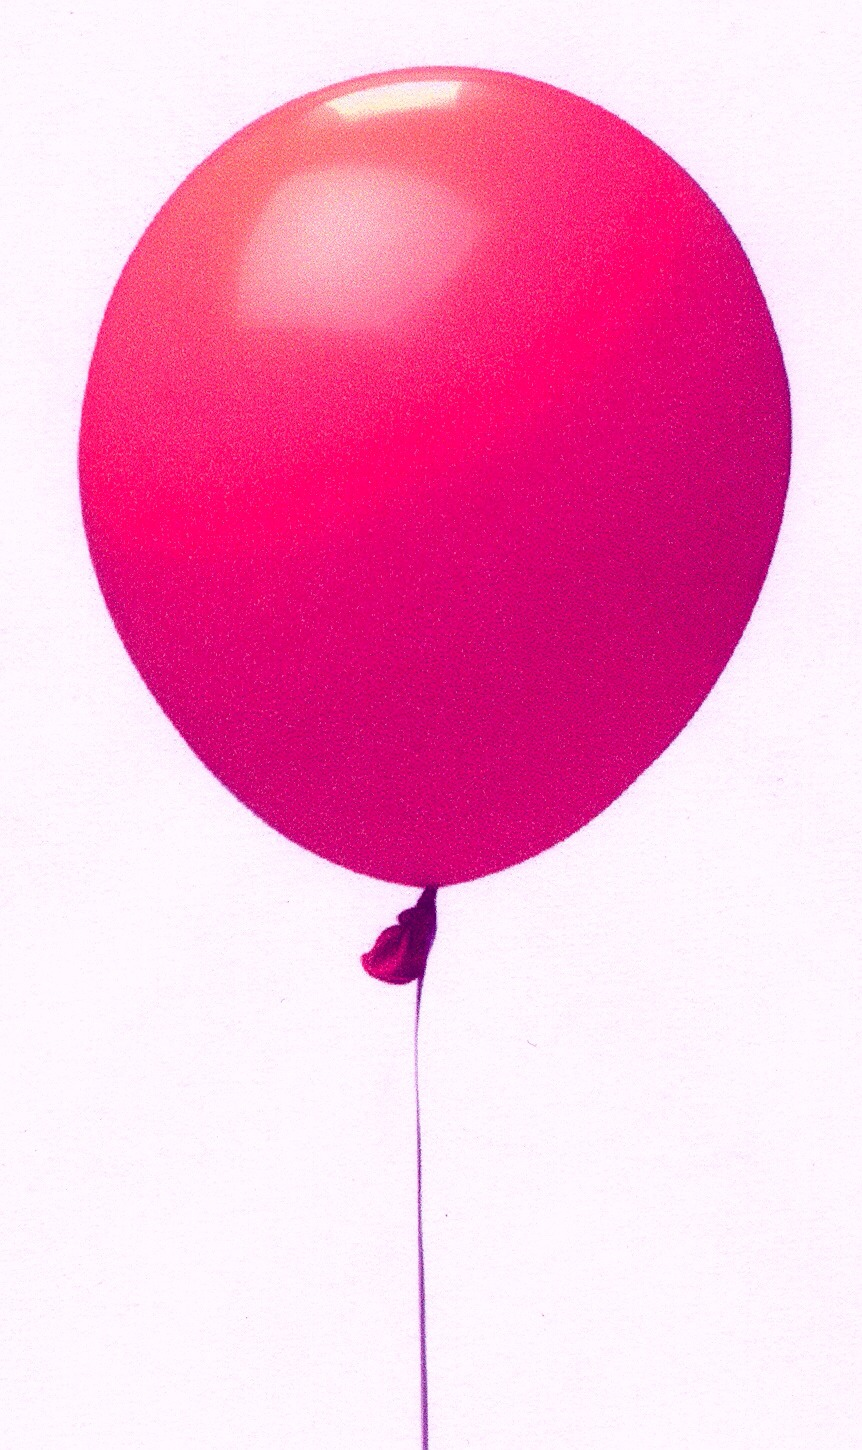 If there's water in your ears, blowing into a deflated balloon can help clear it out.